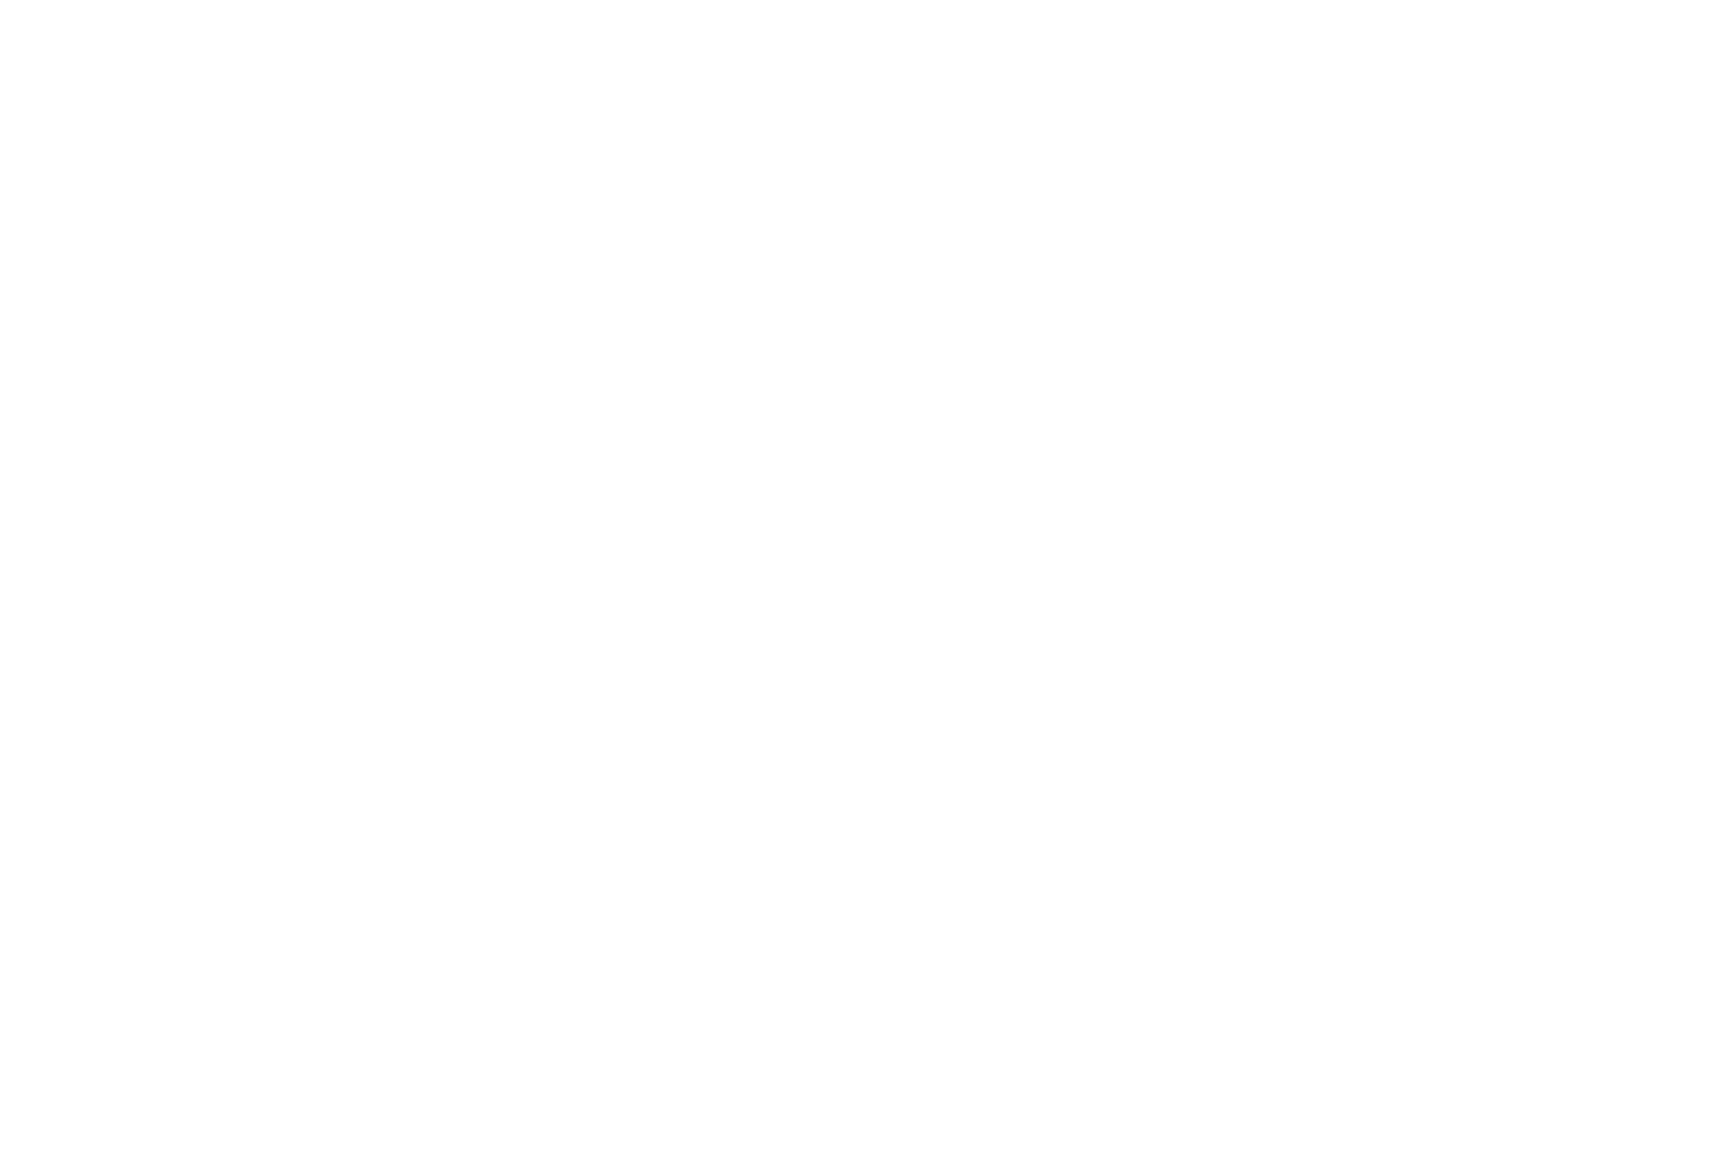 OFFICIAL SELECTION - The Thing In The Basement Horror Fest - 2020